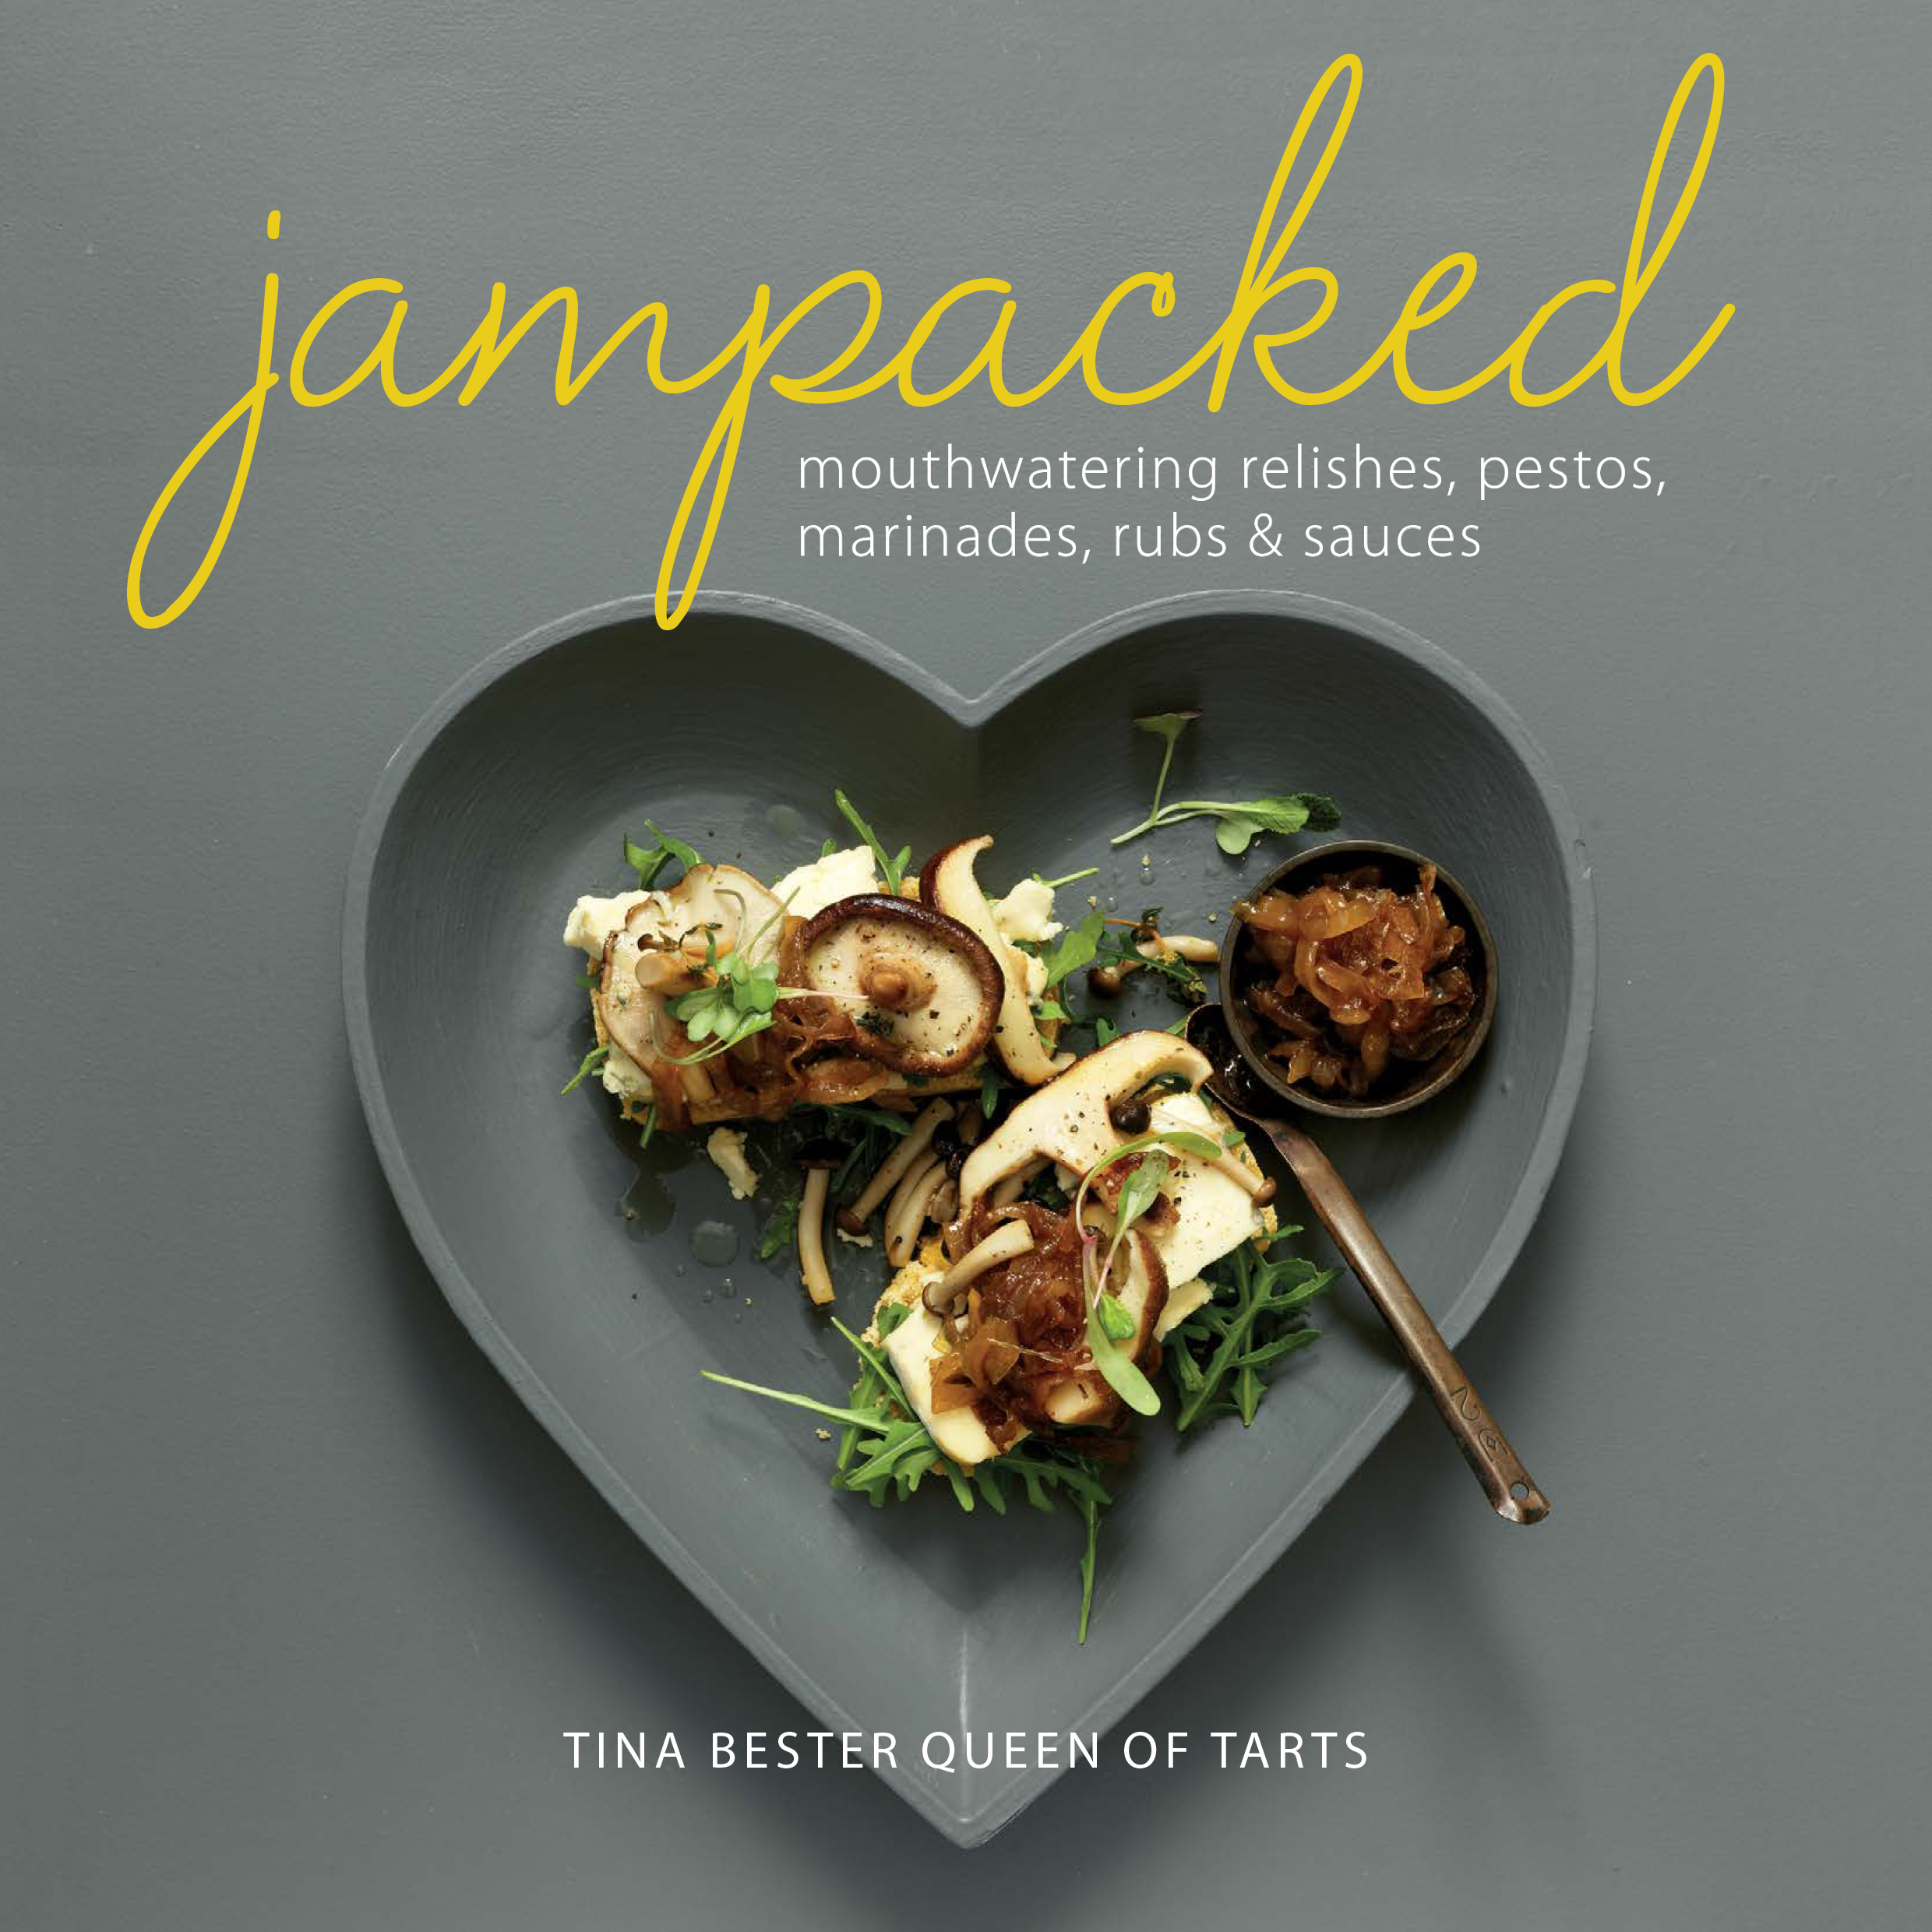 Jampacked – Mouthwatering Relishes, Pestos, Marinades, Rubs & Sauces